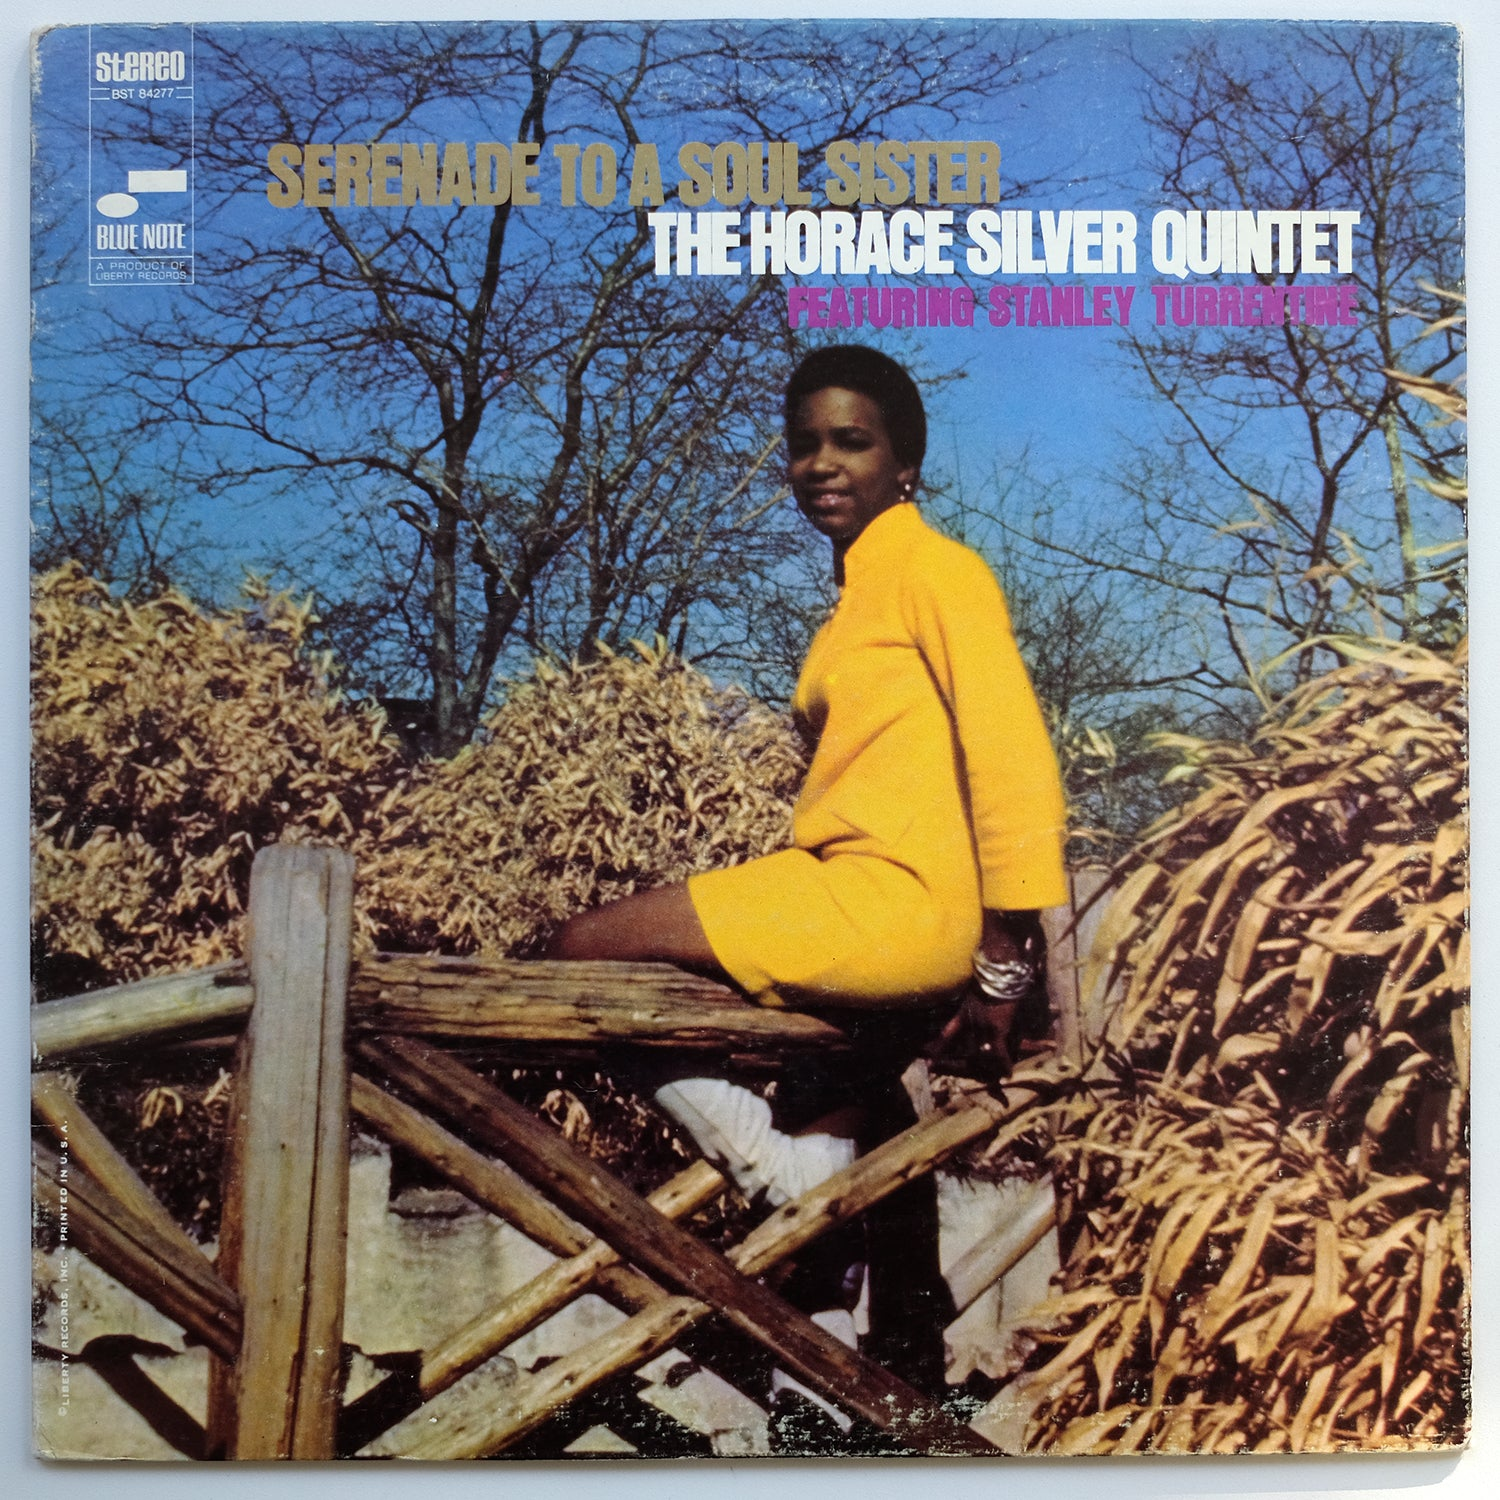 The Horace Silver Quintet, Serenade To A Soul Sister